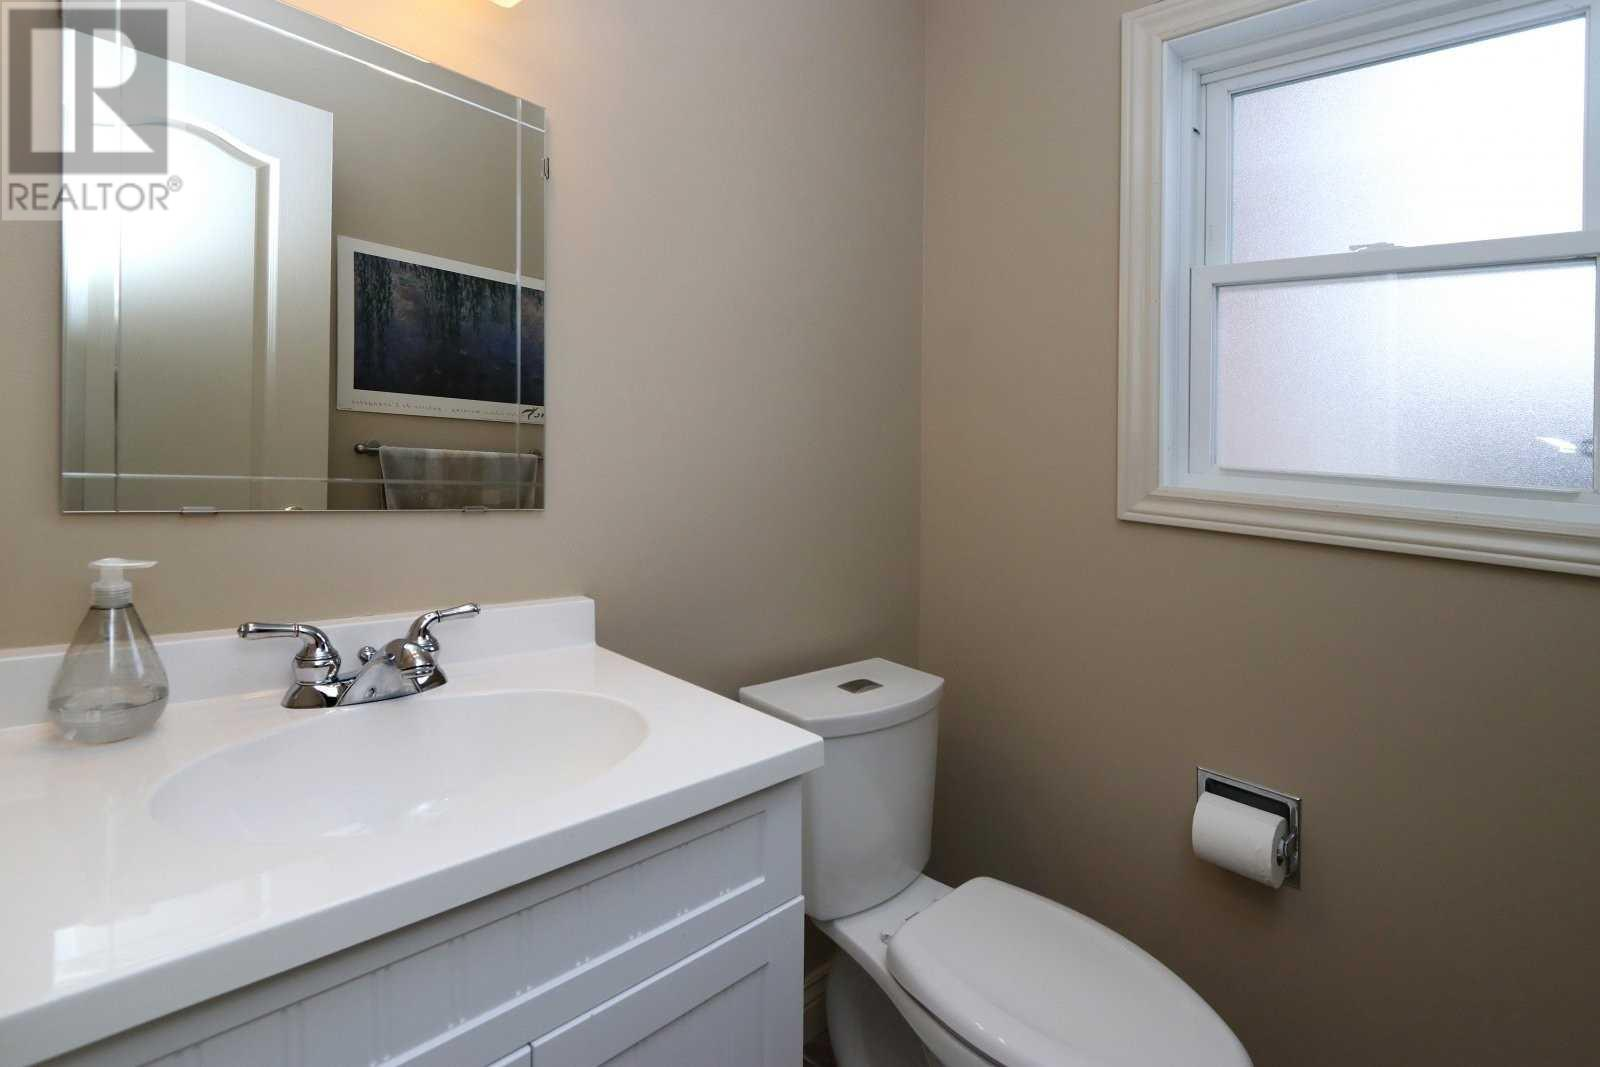 2524 Windjammer Rd, Mississauga, Ontario  L5L 1H9 - Photo 12 - W4675885